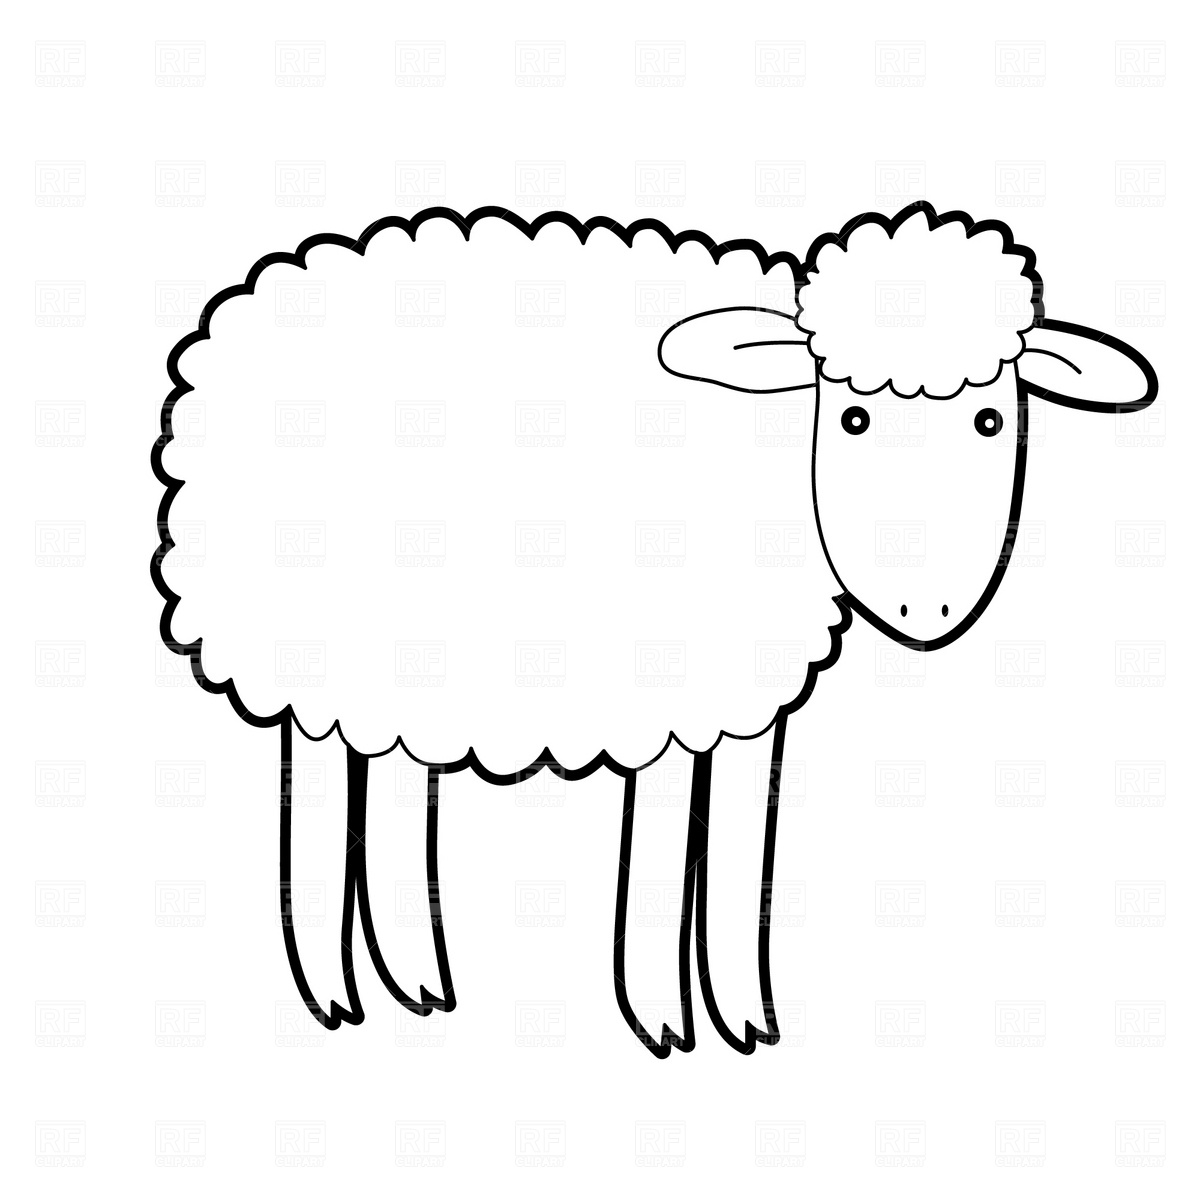 Sheep clipart download free.